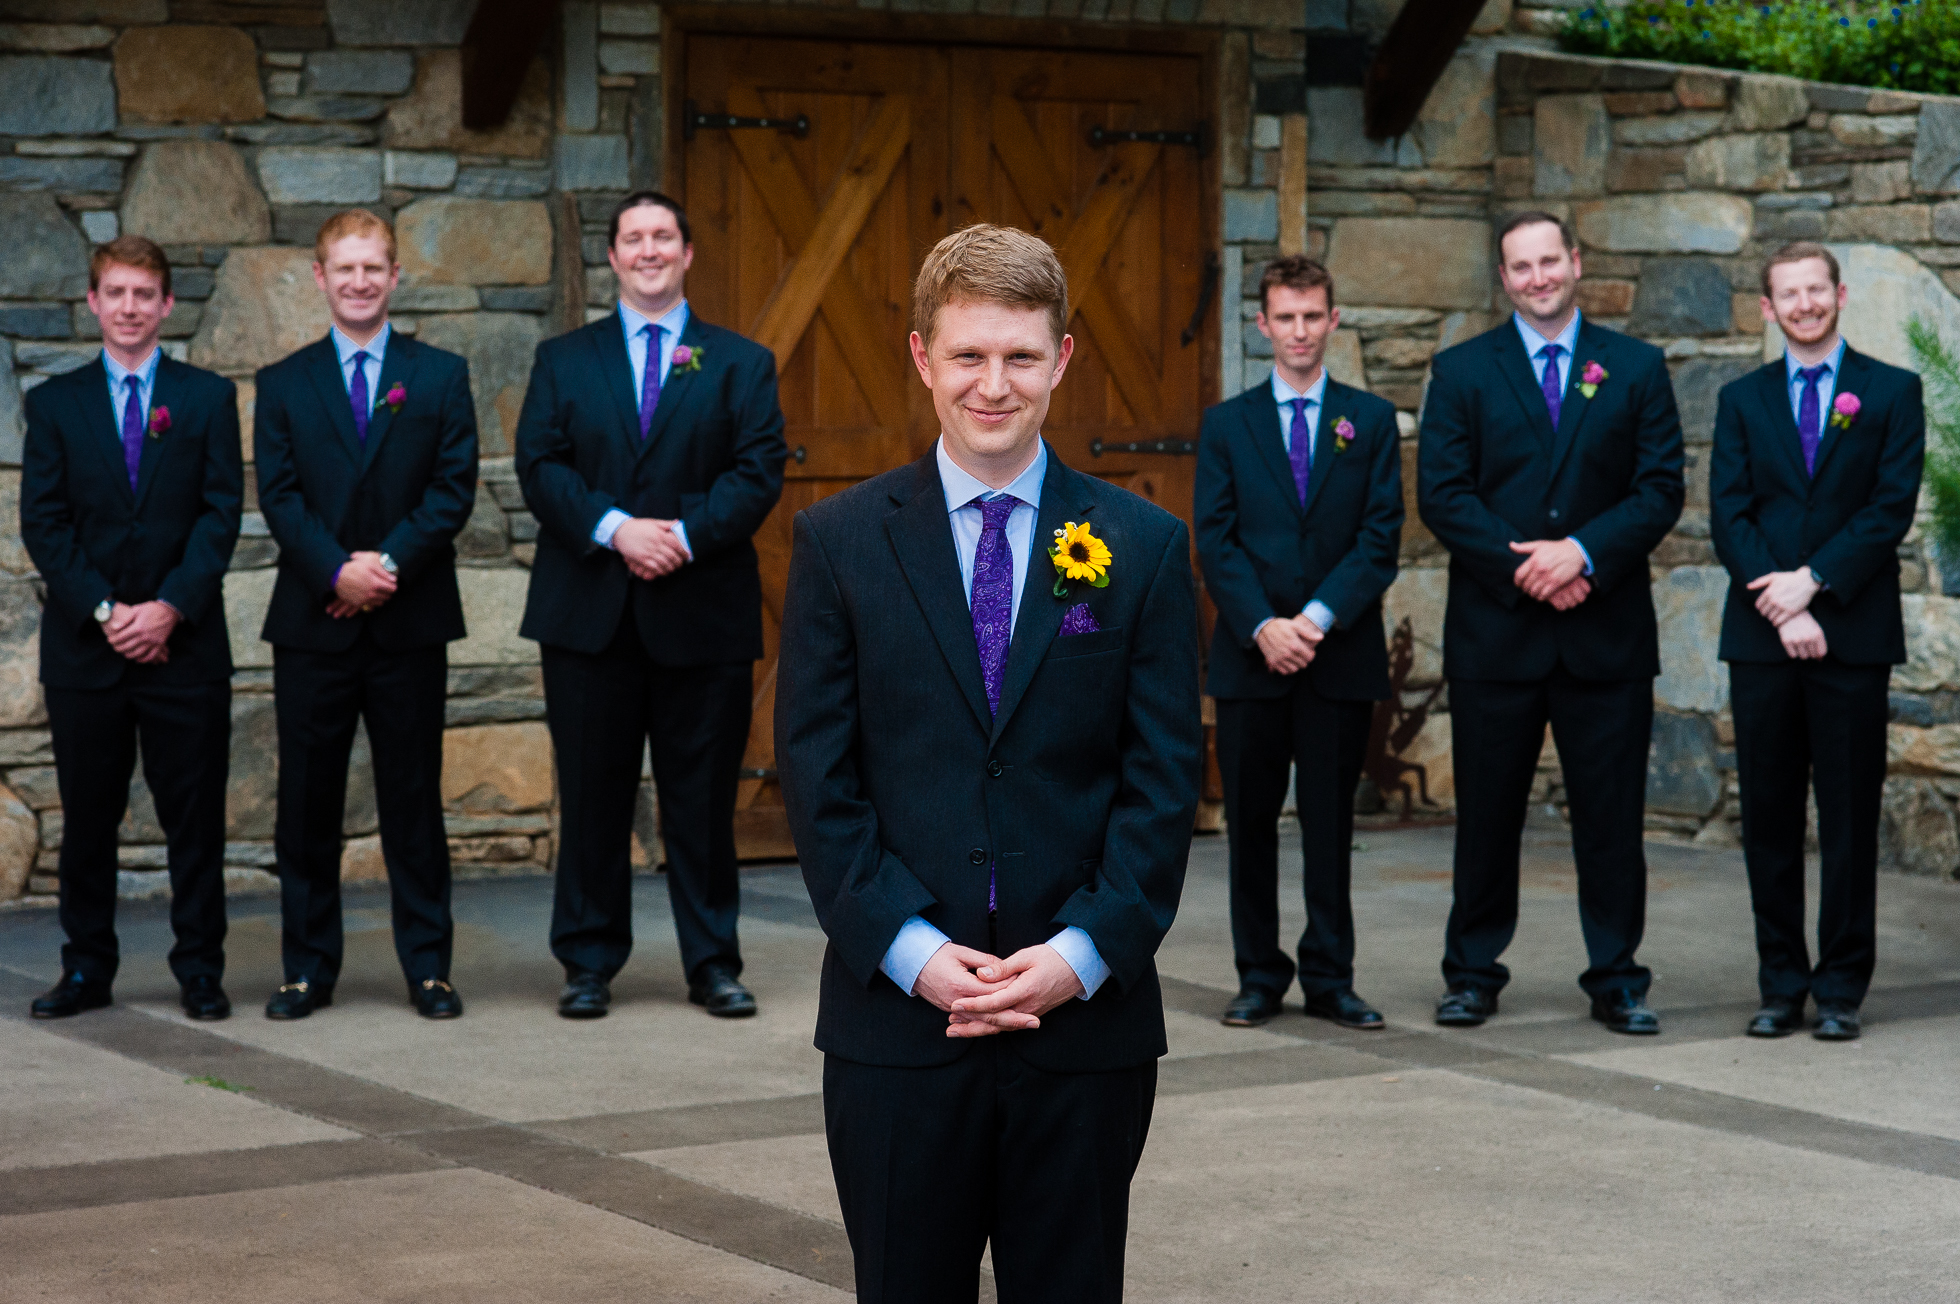 groom and groomsmen pose for portrait at asheville wedding